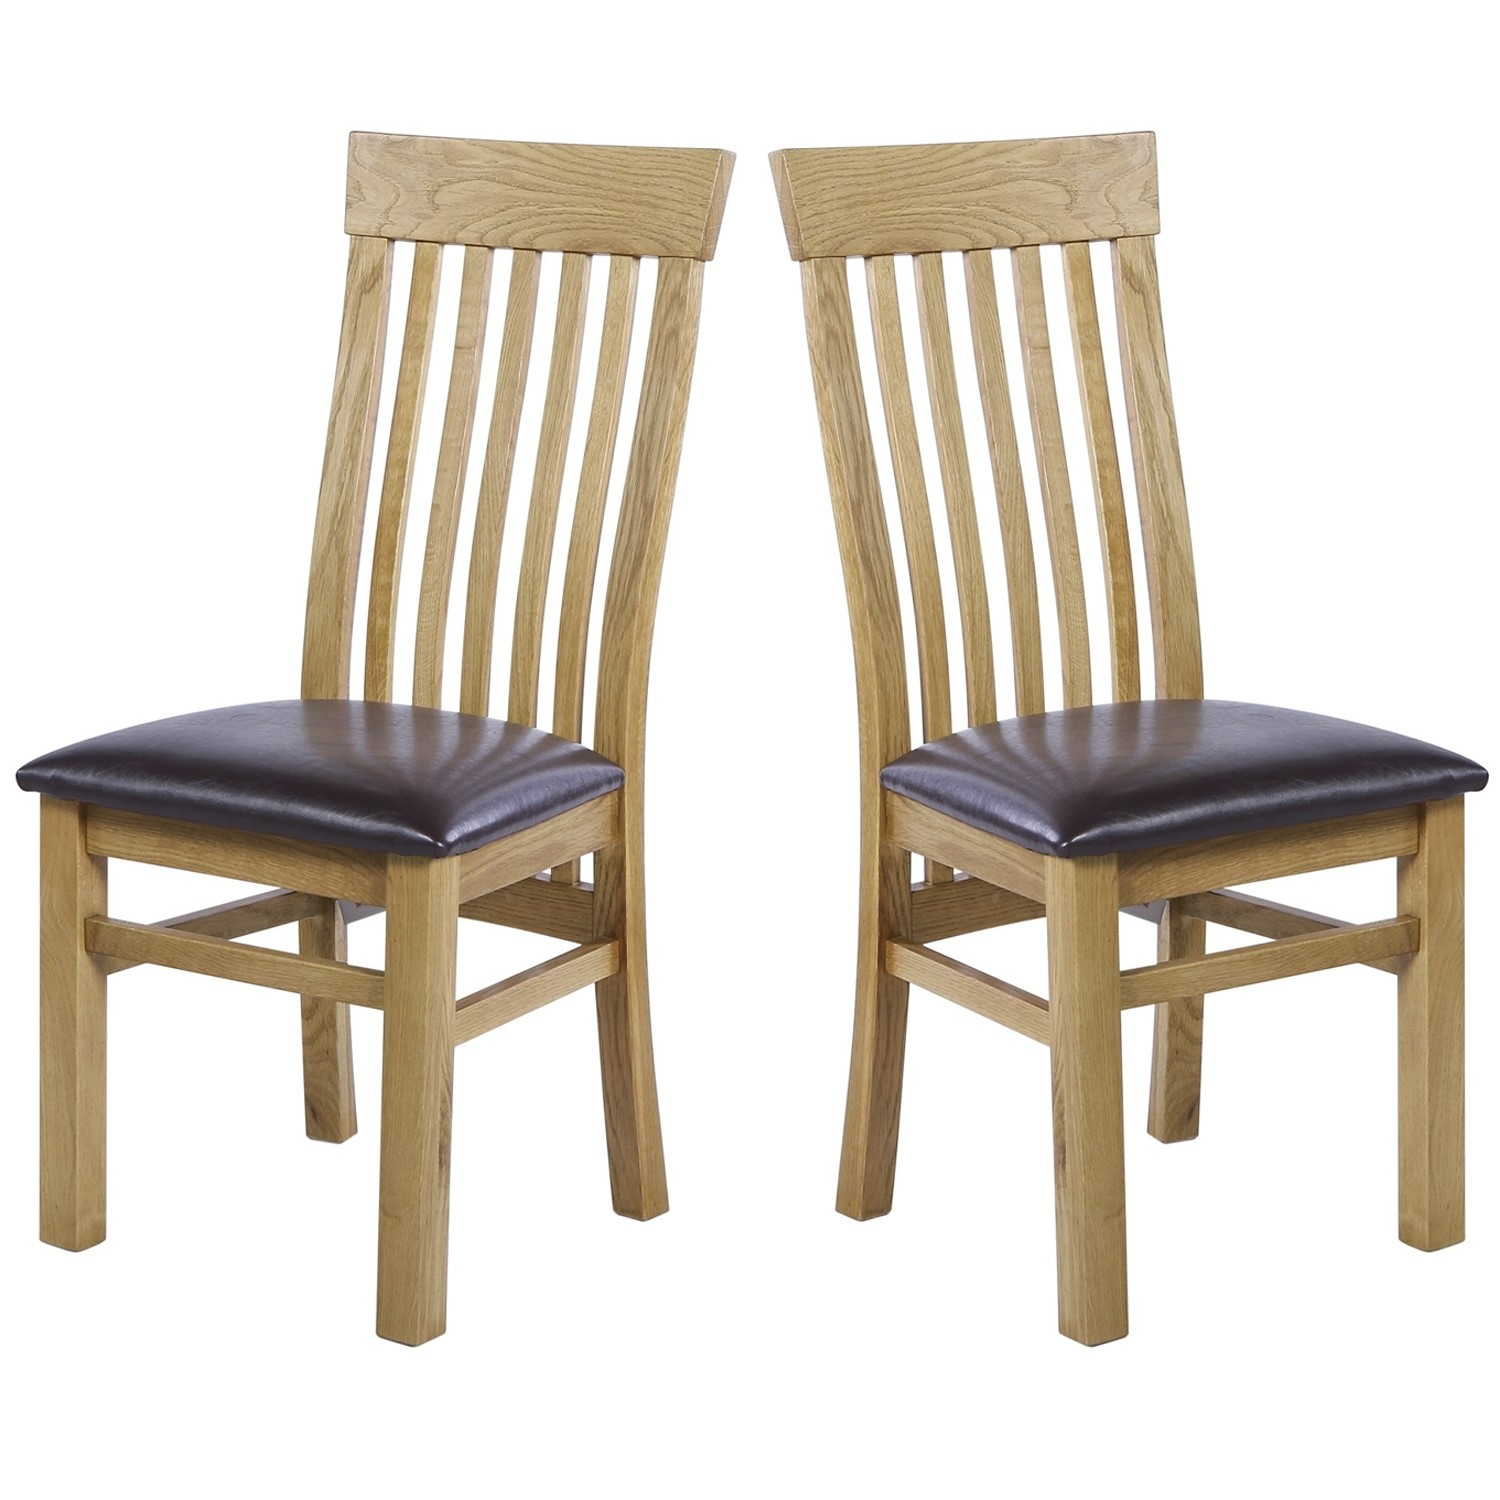 225 & Rustic Saxon Pair of Solid Oak Dining Chairs with Brown Faux Leather Seat